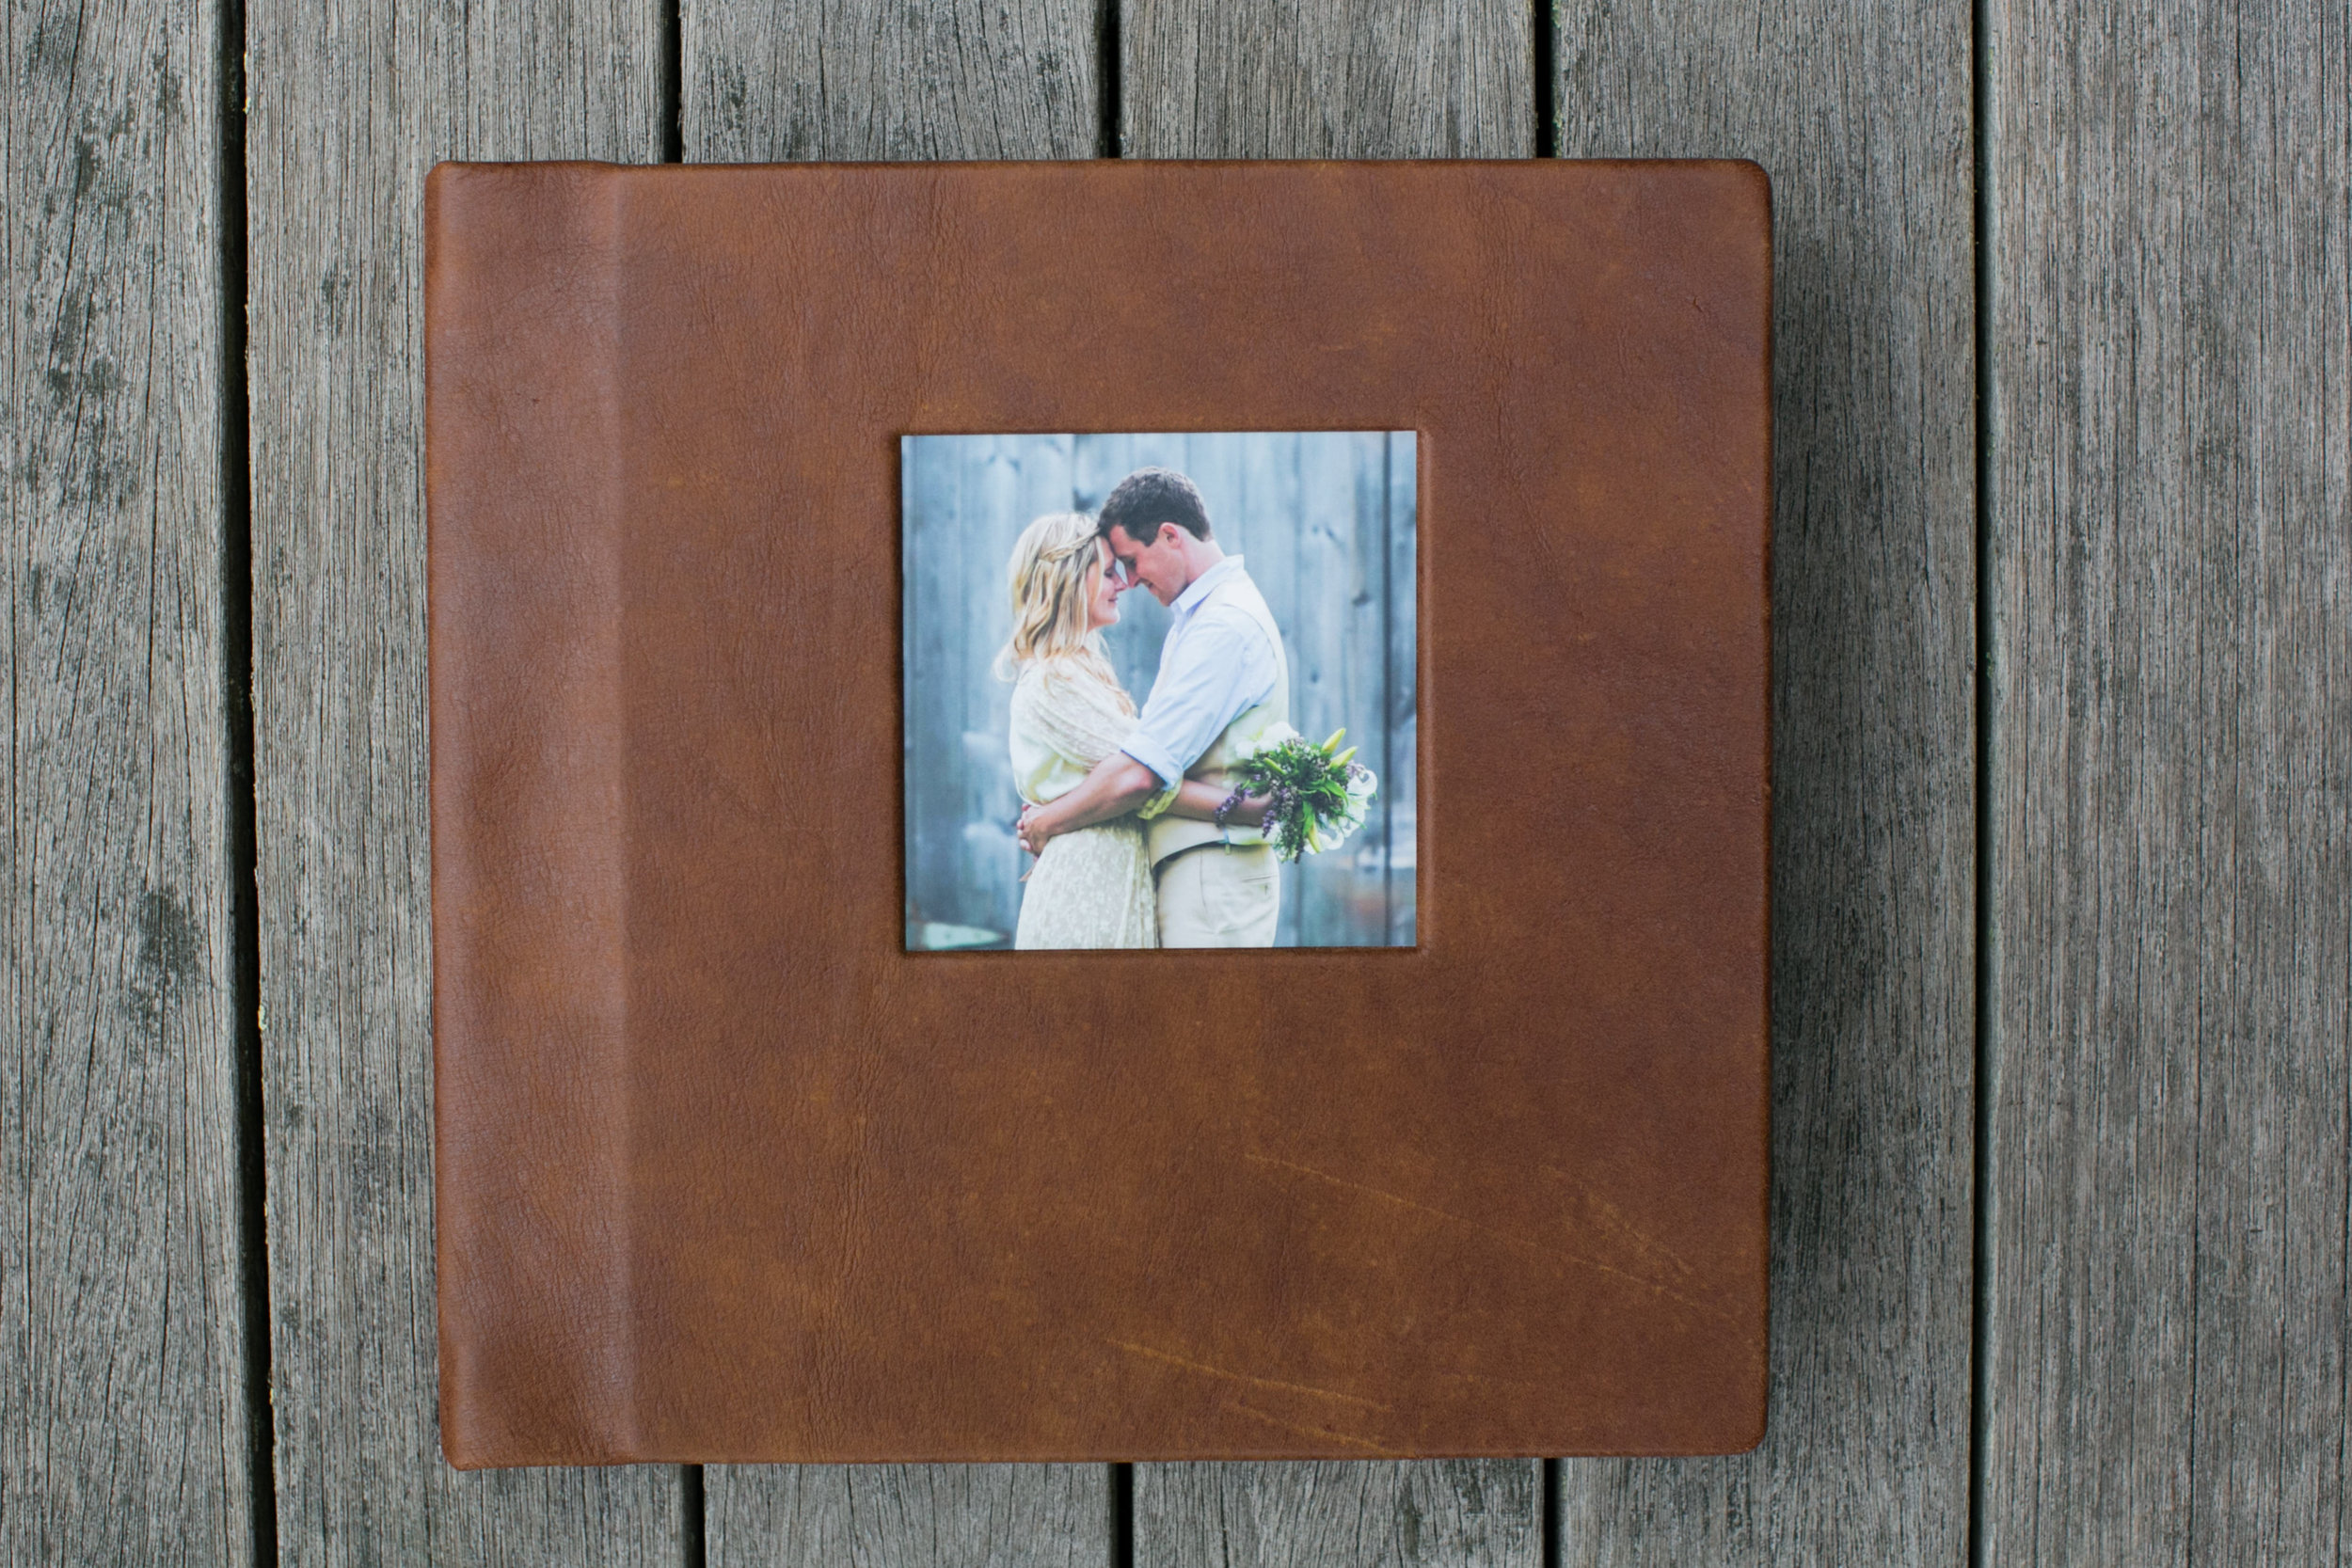 Add a cameo window to front cover $60.00